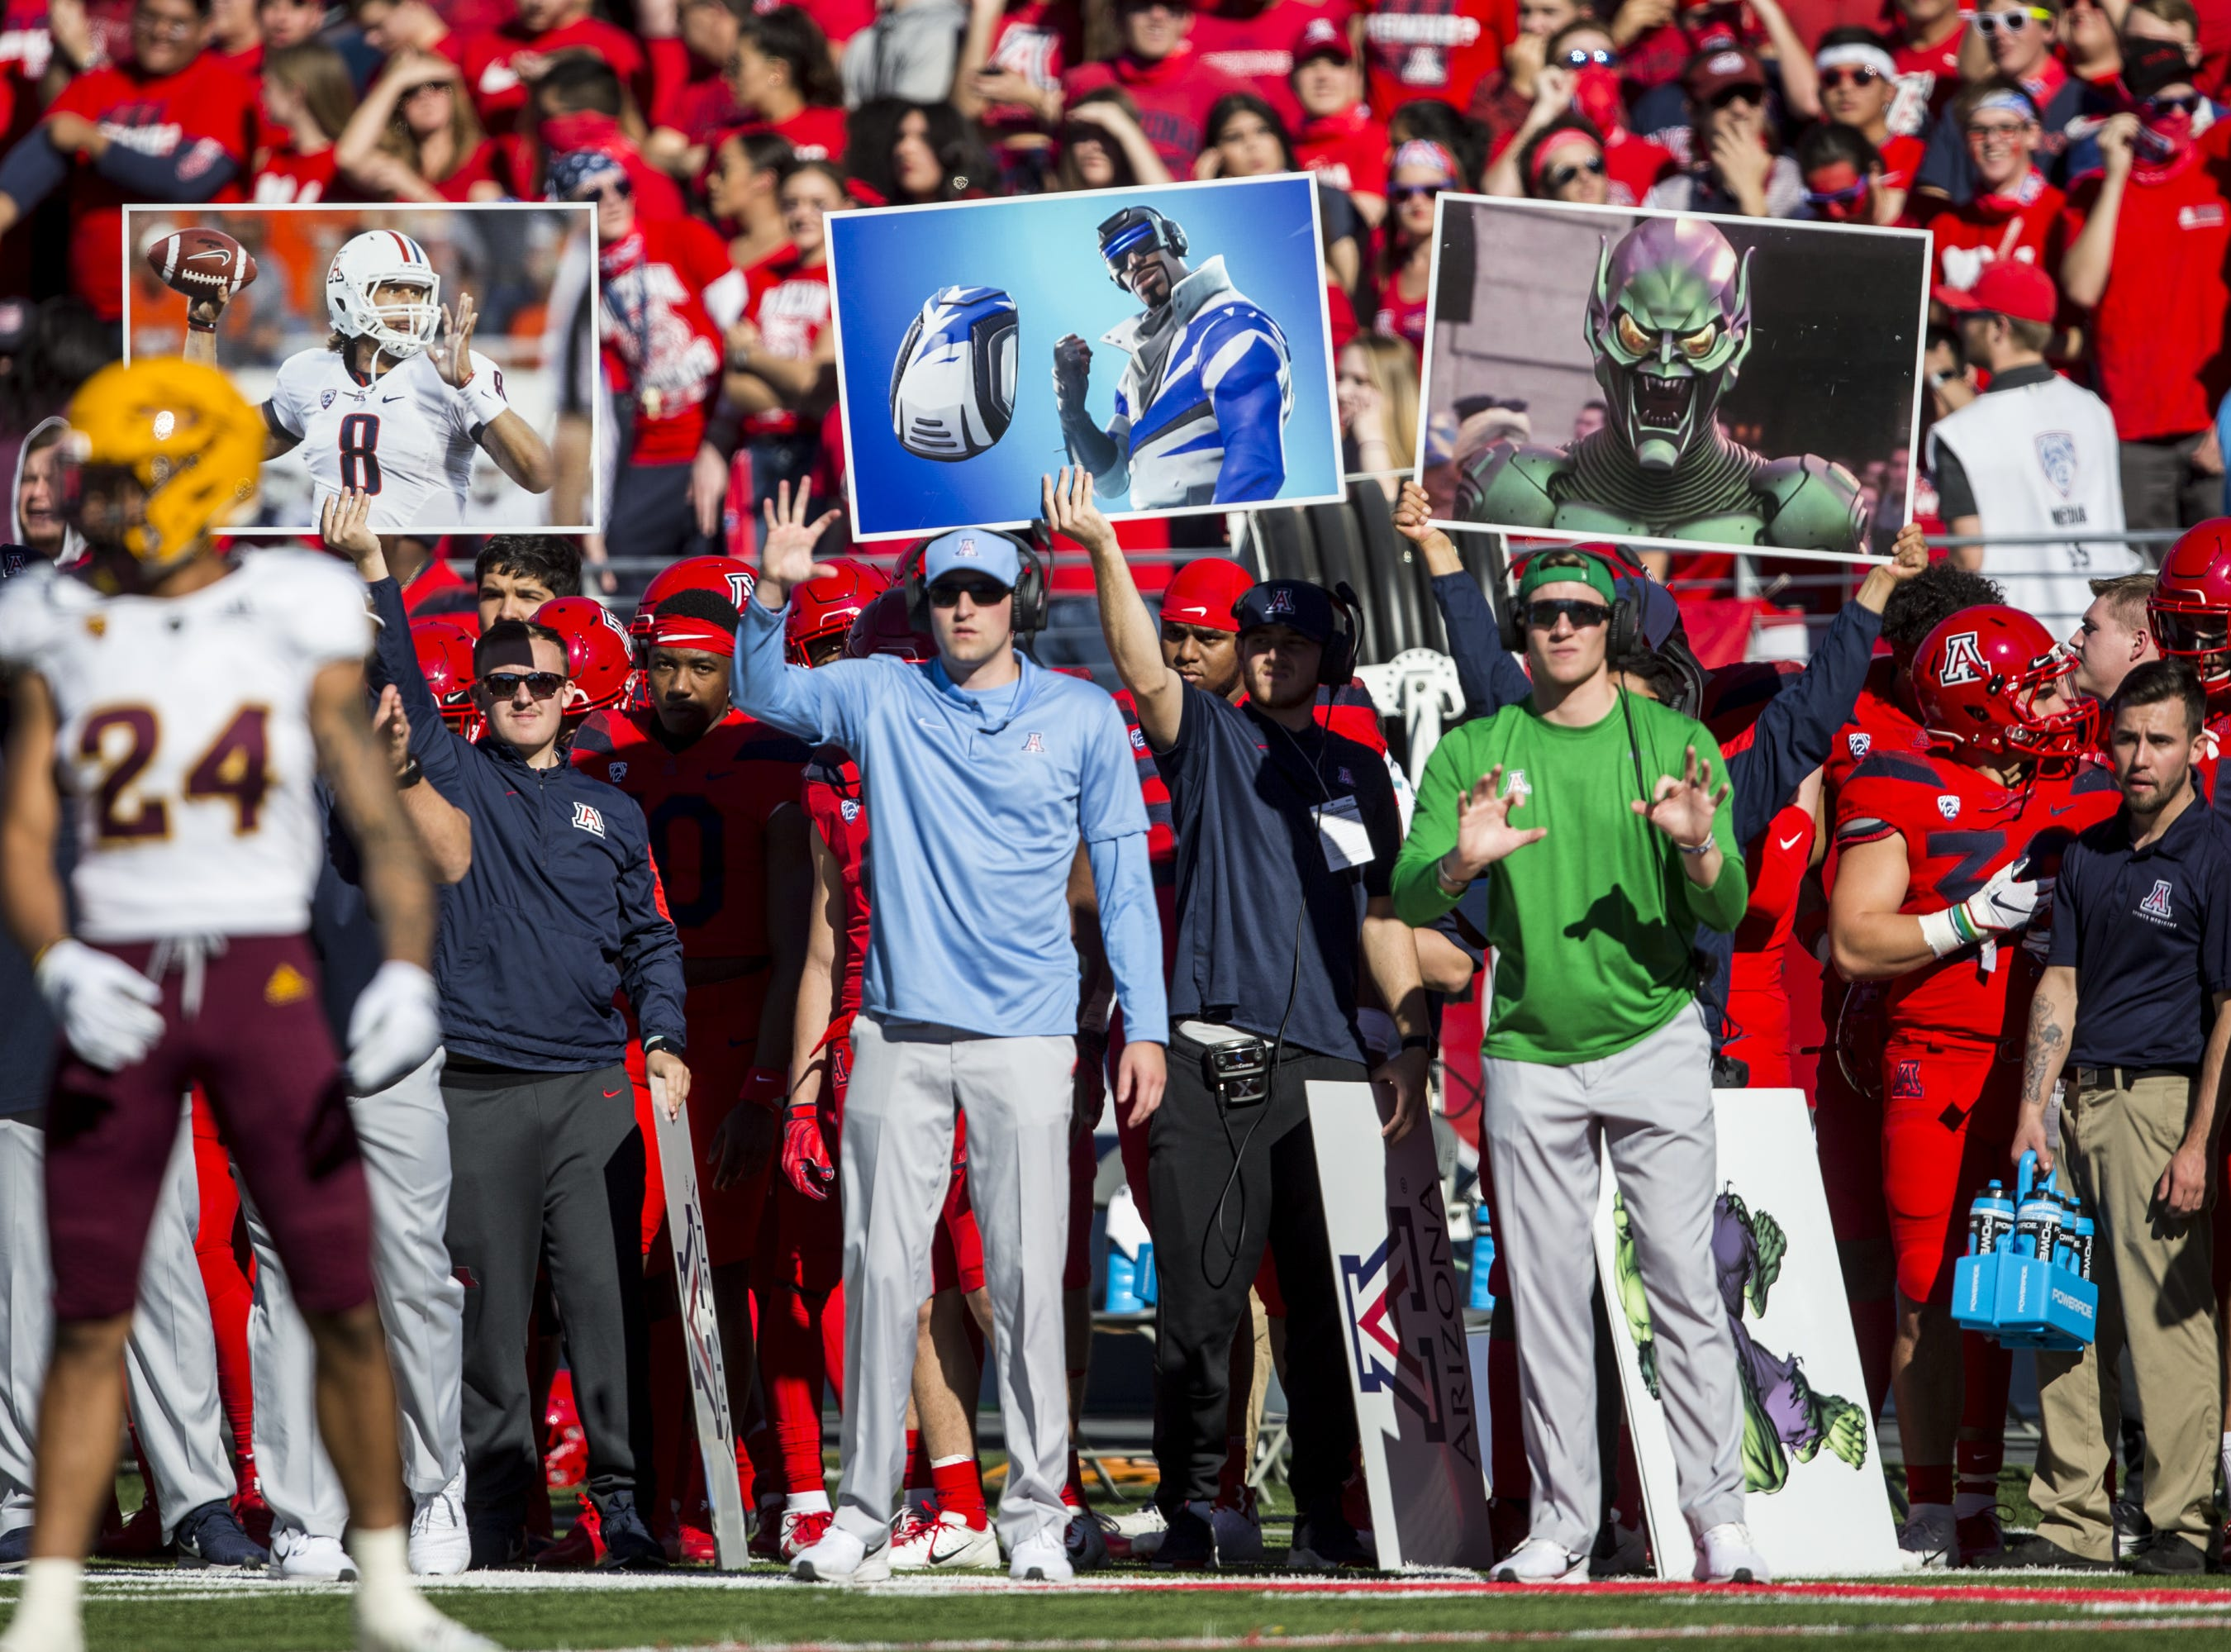 Arizona personnel hold up play signals during the first half of the Territorial Cup on Saturday, Nov. 24, 2018, at Arizona Stadium in Tucson, Ariz.